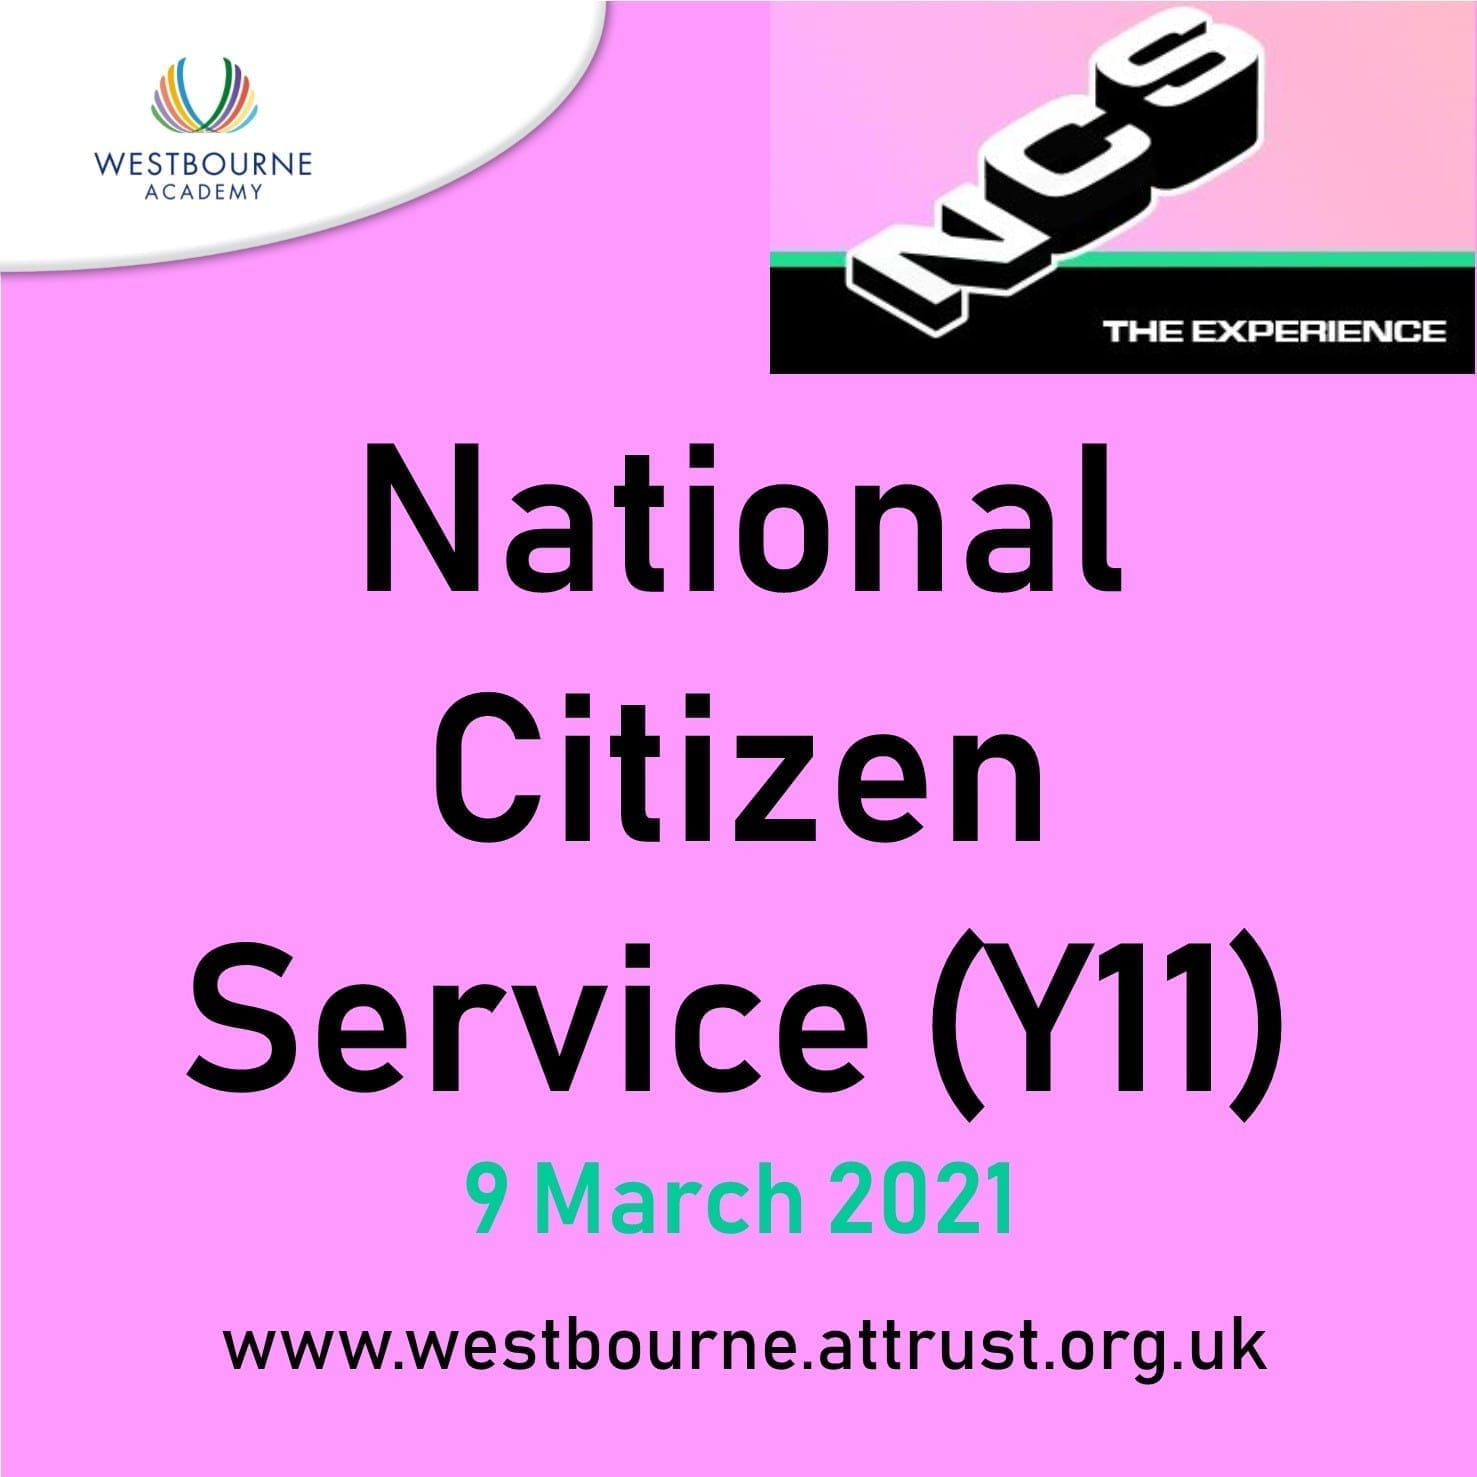 National Citizen Service (Y11)